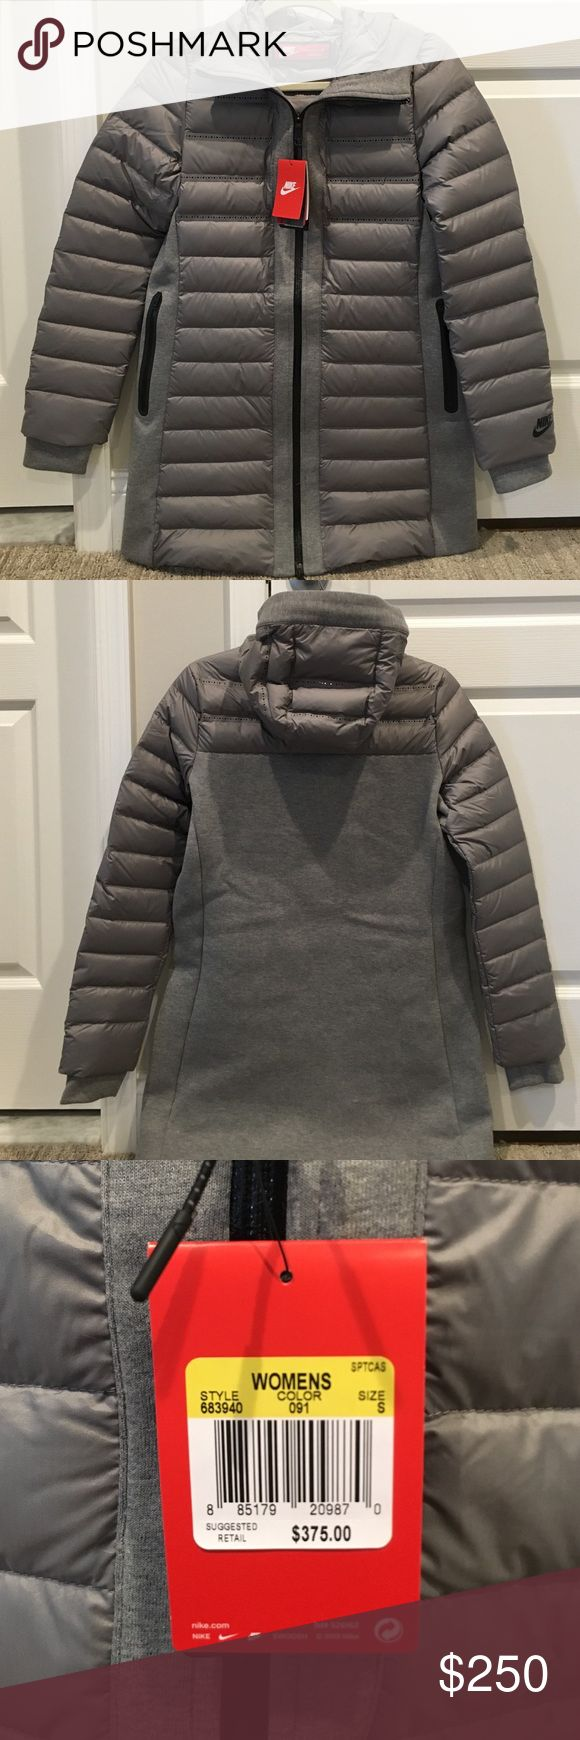 Brand new beautiful Nike winter coat with hood Brand new with tags Nike part puffer winter coat with hood- very warm. Gorgeous gray material. 2 pockets on both sides of the jacket. Zip up collar. PRICE NOT FIXED, OPEN FOR NEGOTIATION- just make offer. Nike Jackets & Coats Puffers